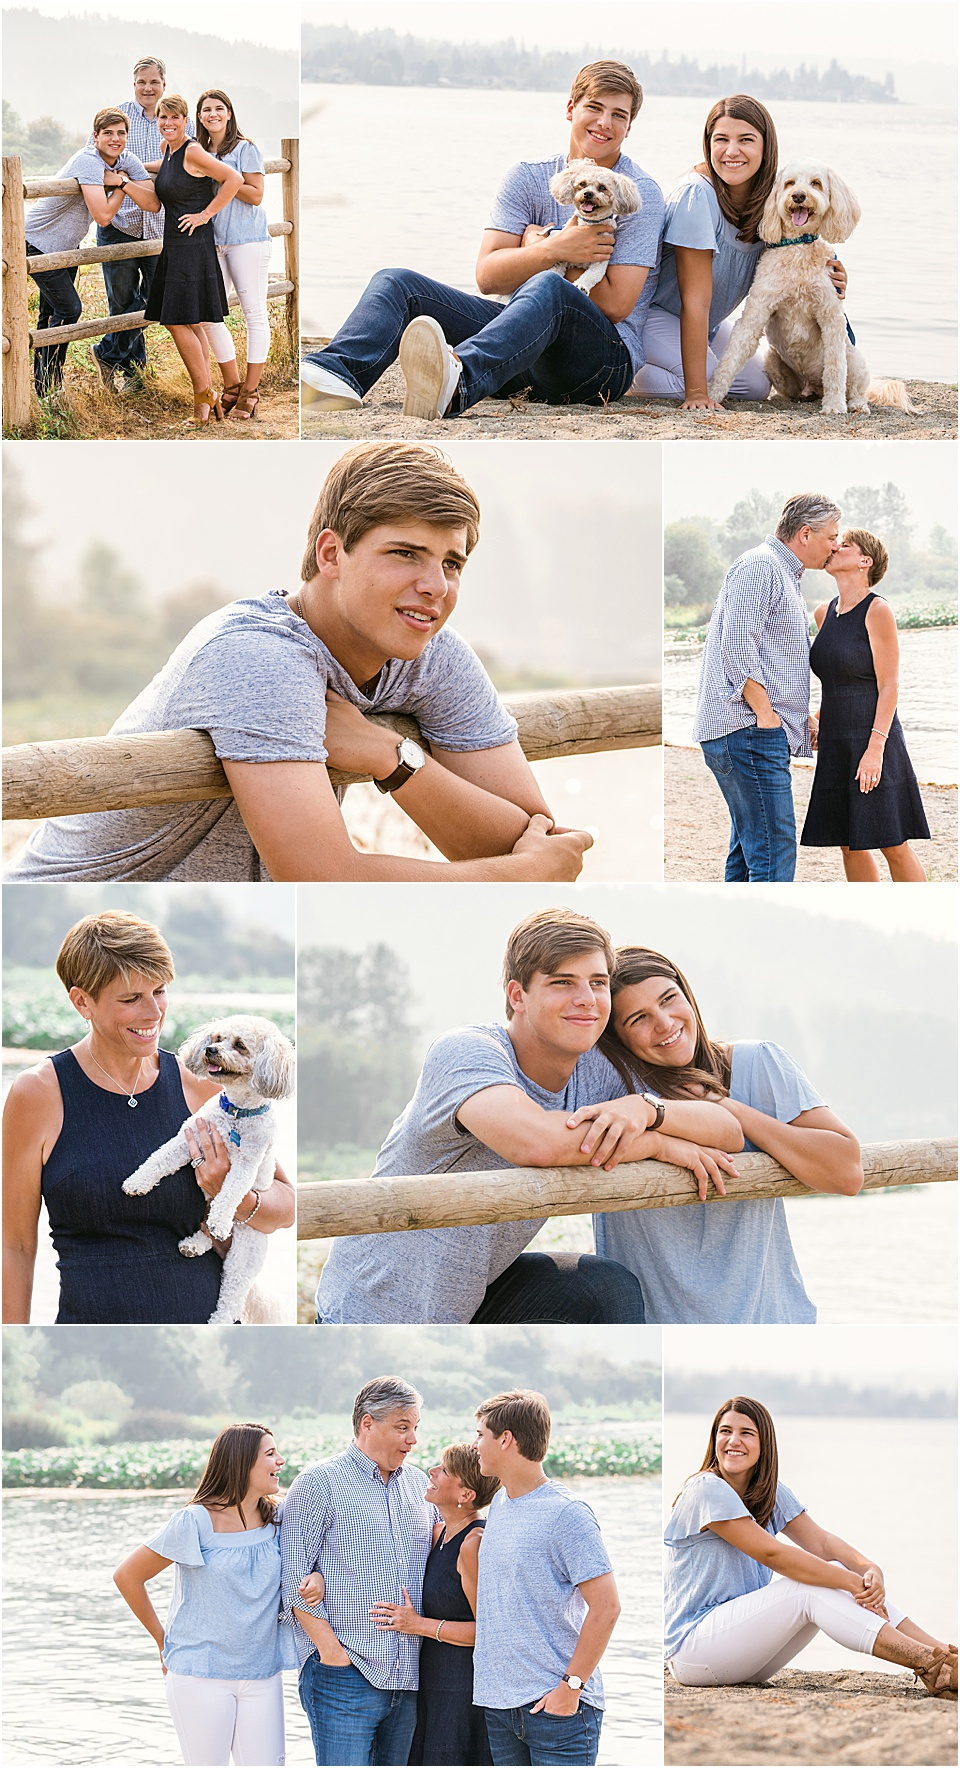 You on your best day! - Ready to book your summer Family Portrait Experience?